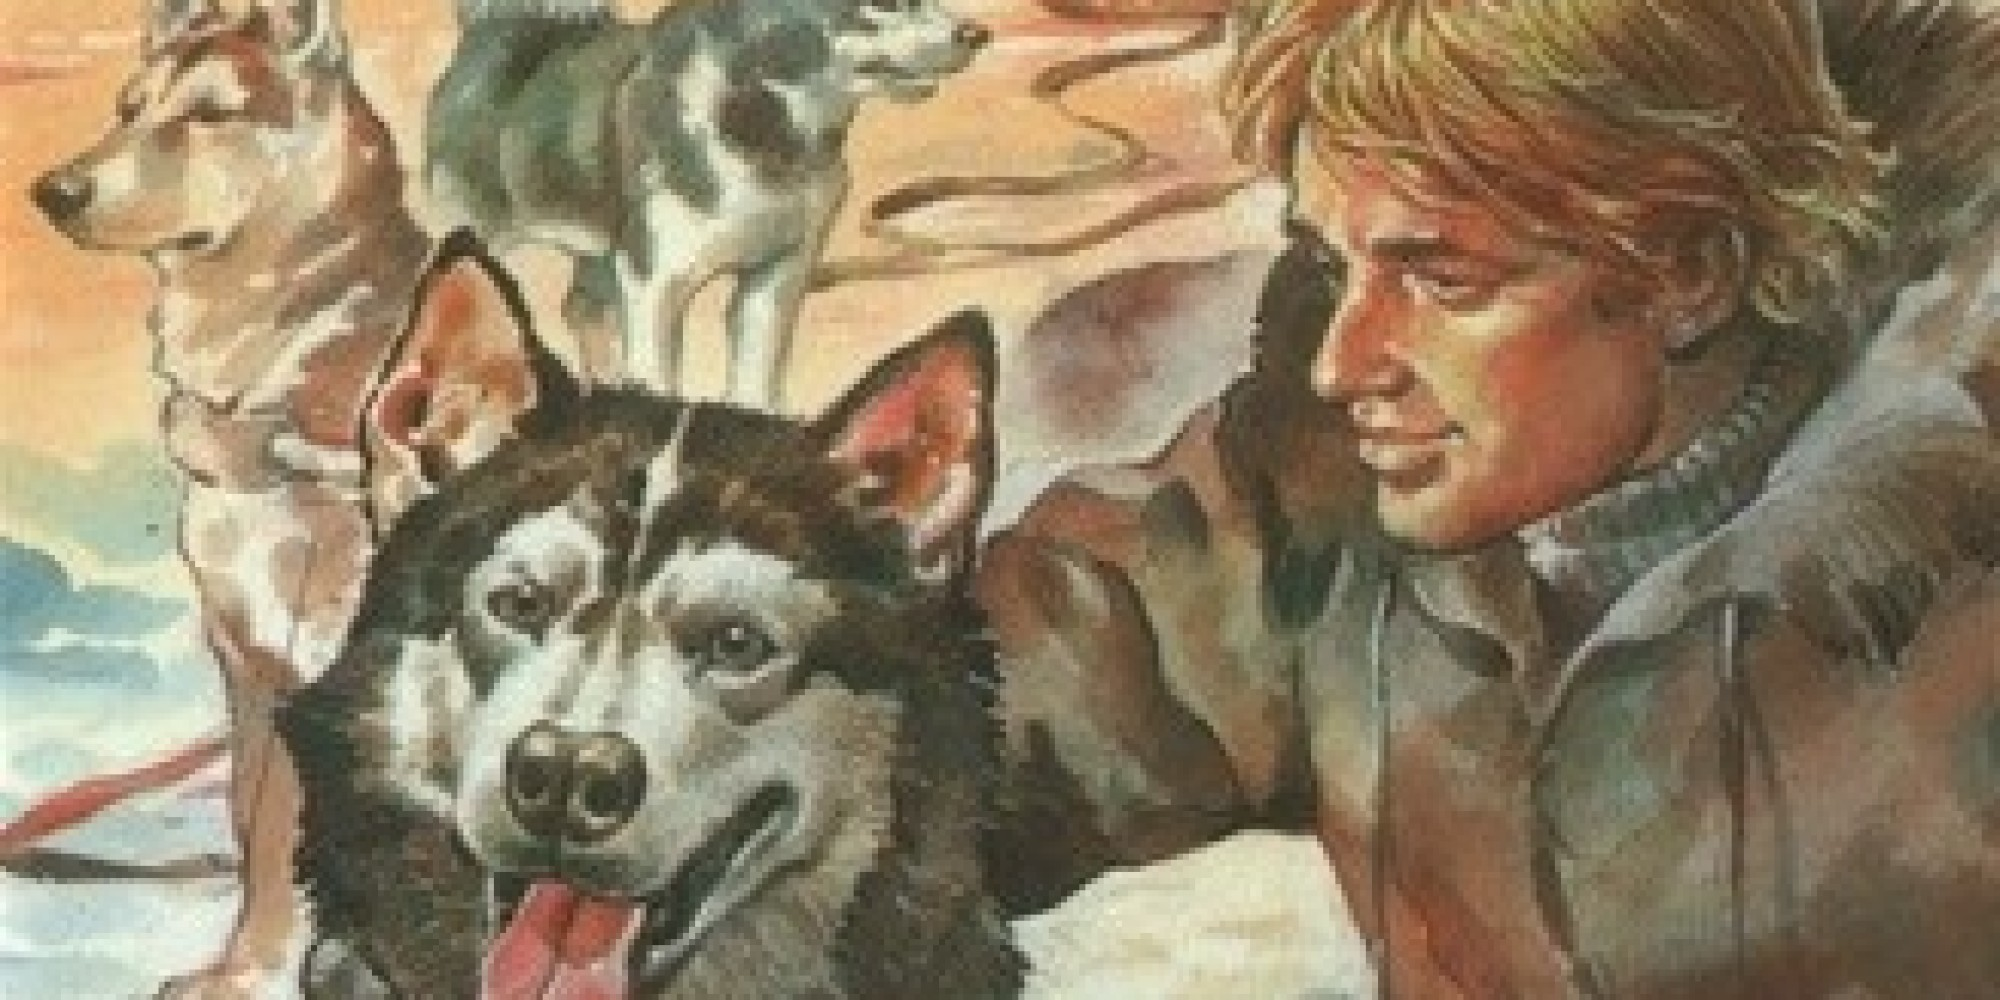 the life and work of jack london Jack london biography - the iconic american novelist, short story writer, journalist and social activist, jack london is best known for writing call of the wild (1903.